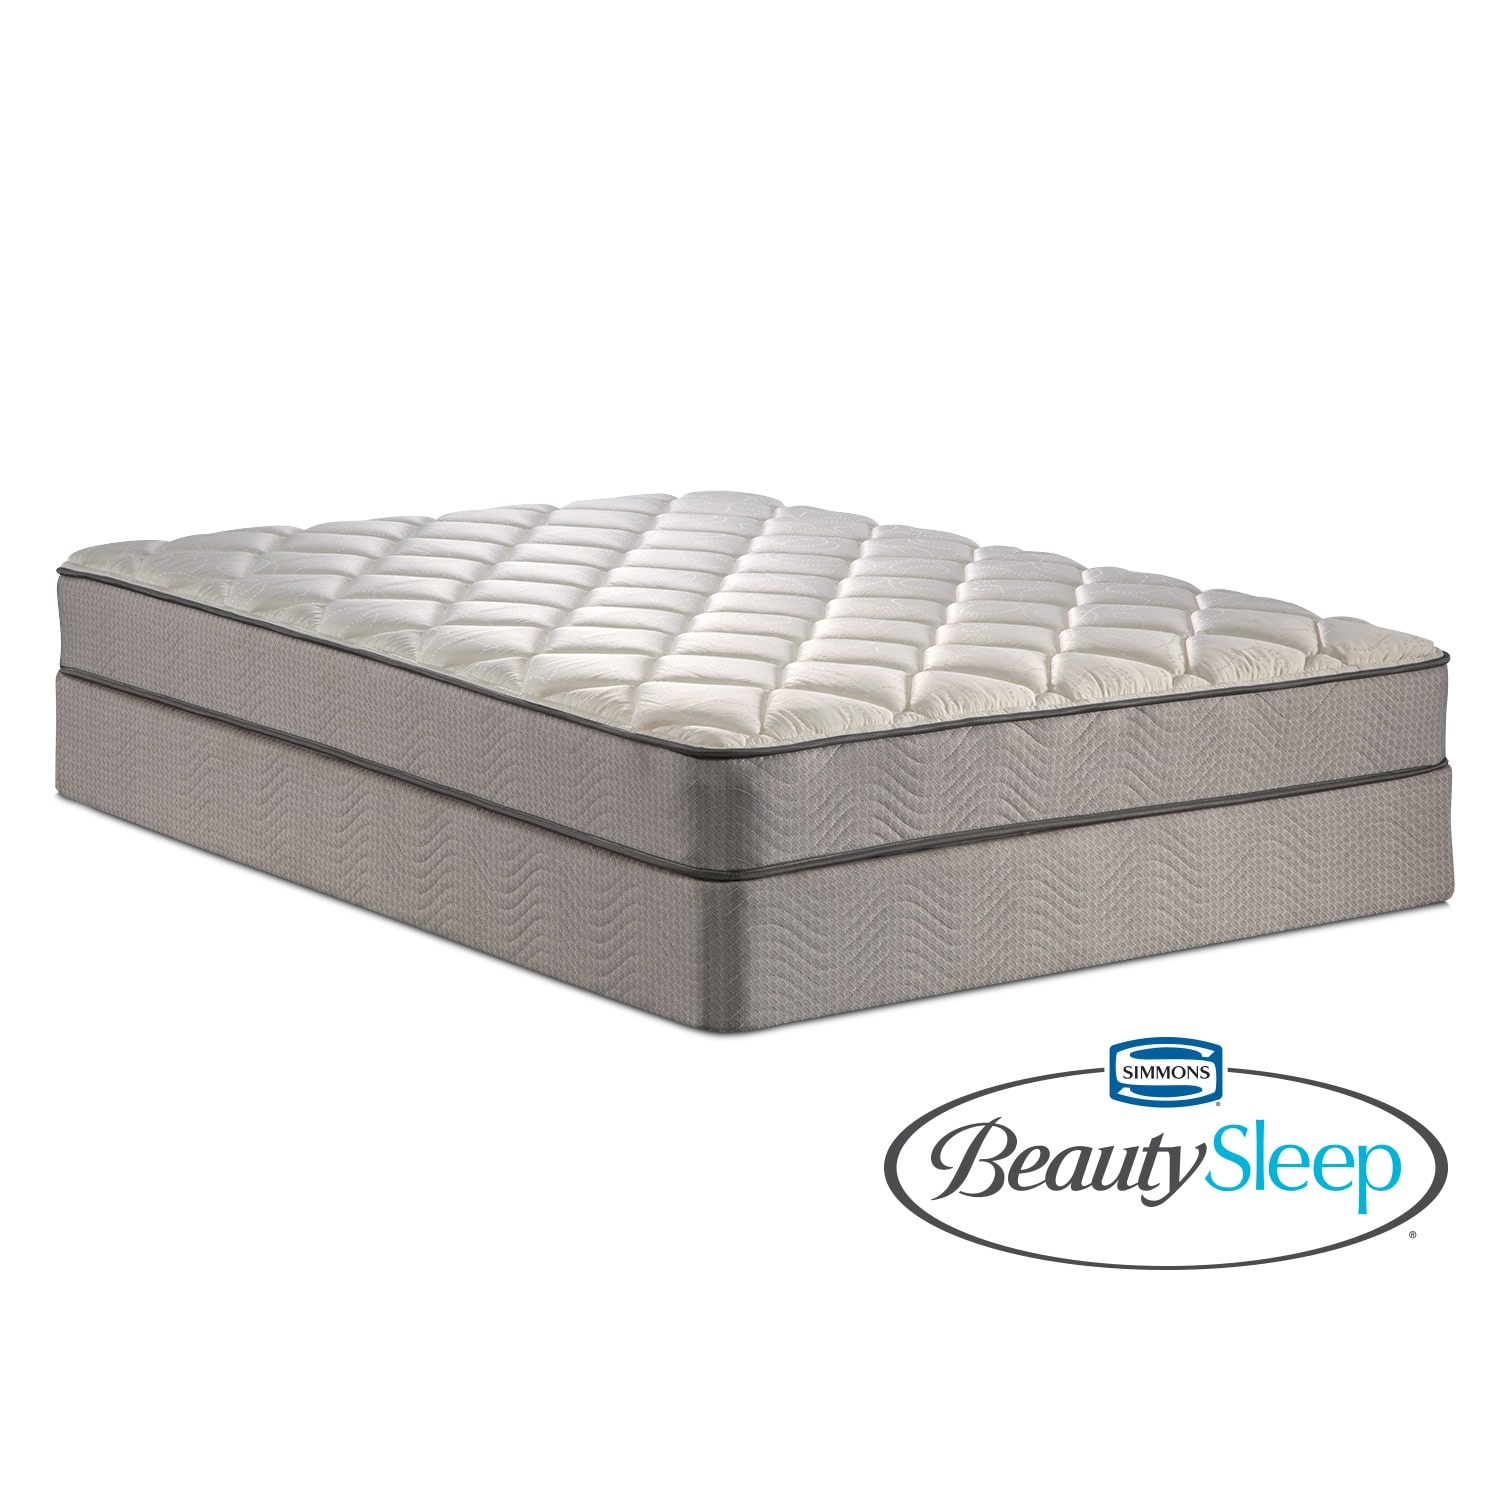 Mattresses and Bedding - Gates Way Plush Twin Mattress and Low-Profile Foundation Set